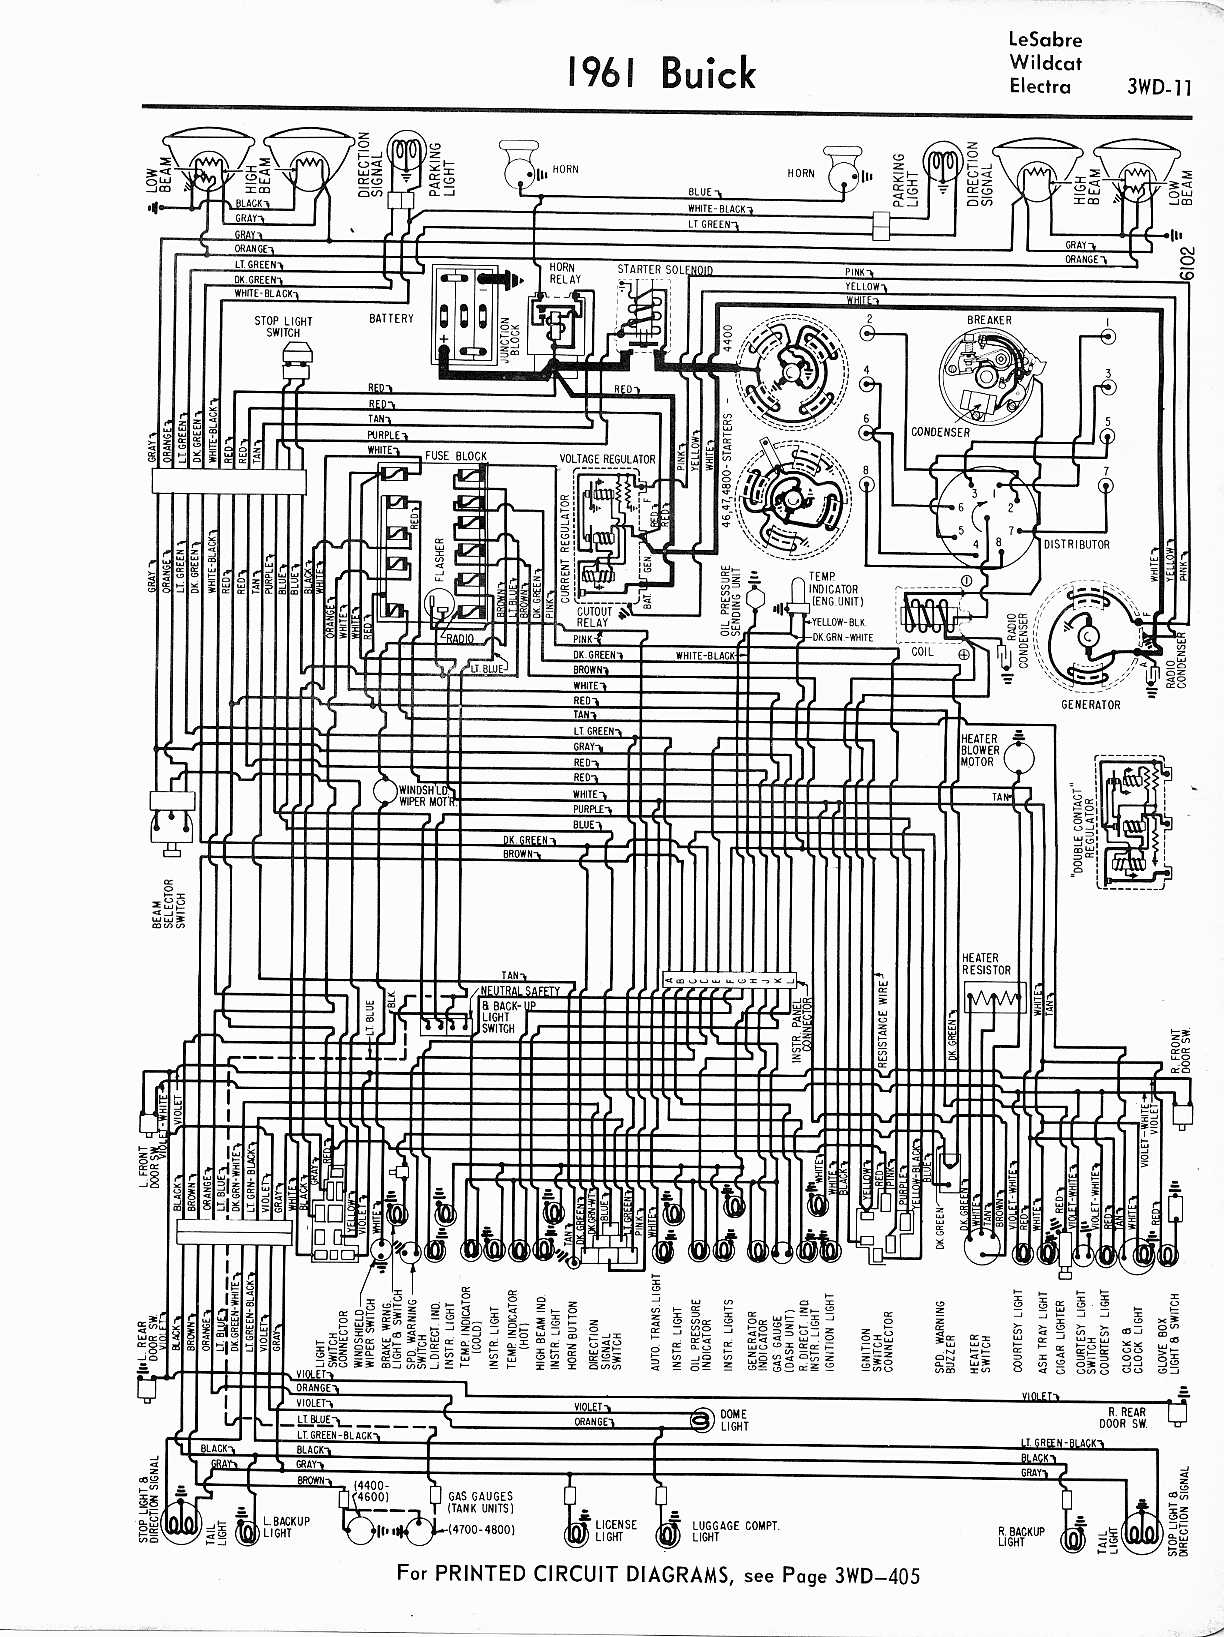 MWireBuic65_3WD 011 buick wiring diagrams 1957 1965 2000 buick century radio wiring diagram at fashall.co